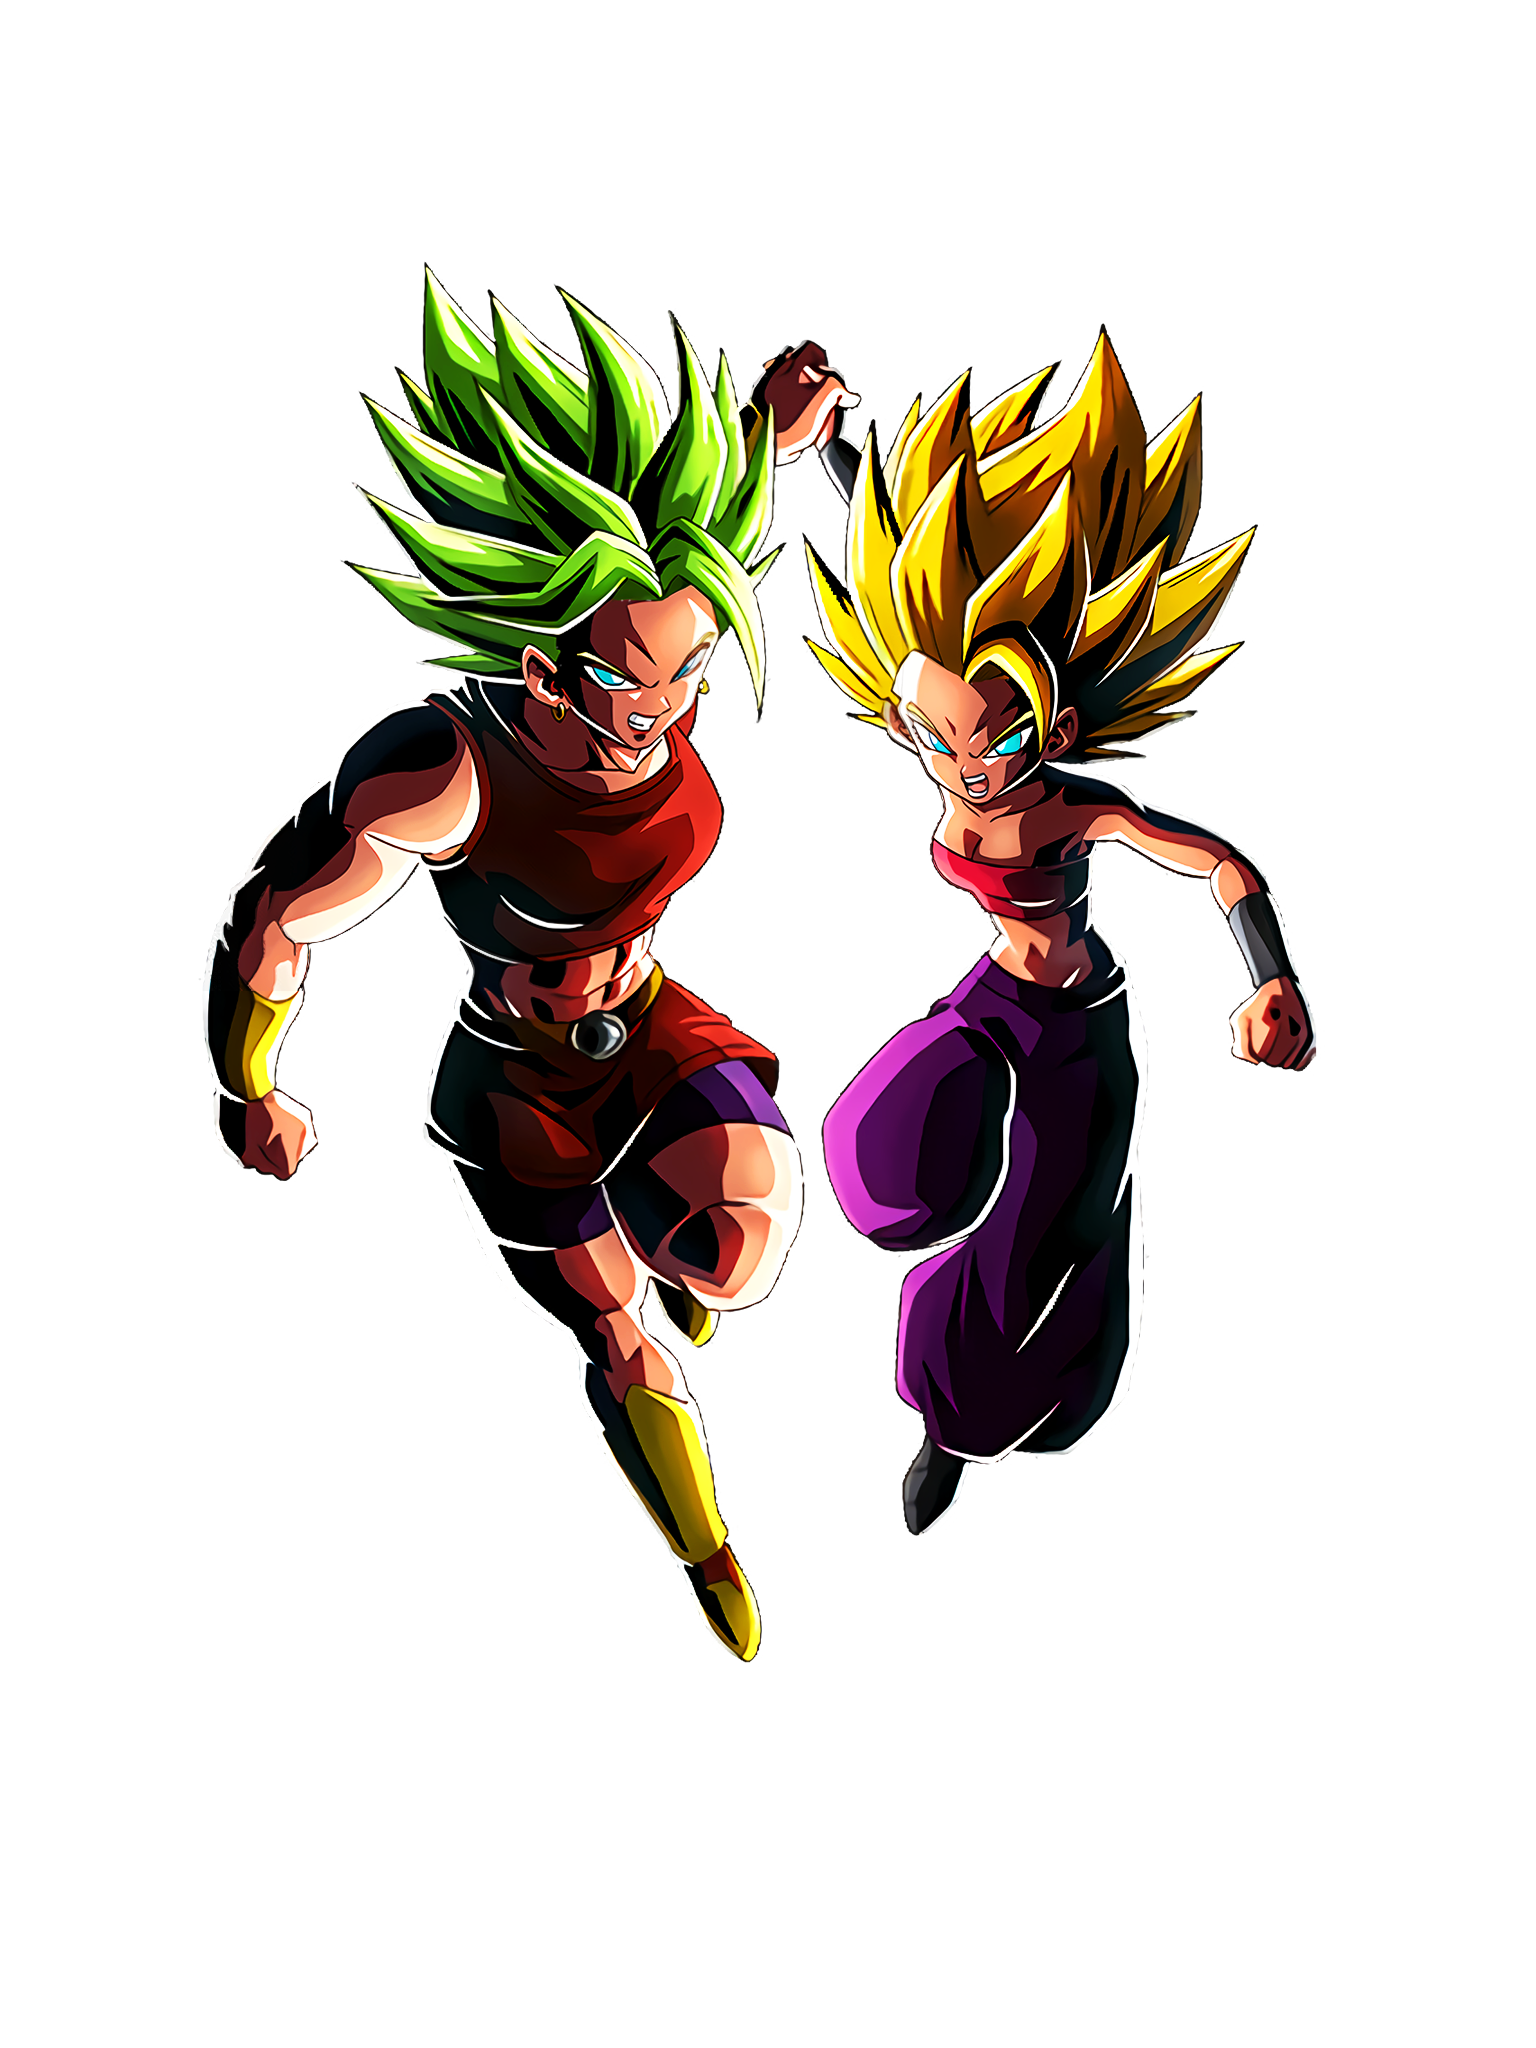 The Two Strongest in All Universes Super Saiyan 2 Caulifla & Super Saiyan 2 Kale DBS Render (Dragon Ball Z Dokkan Battle).png